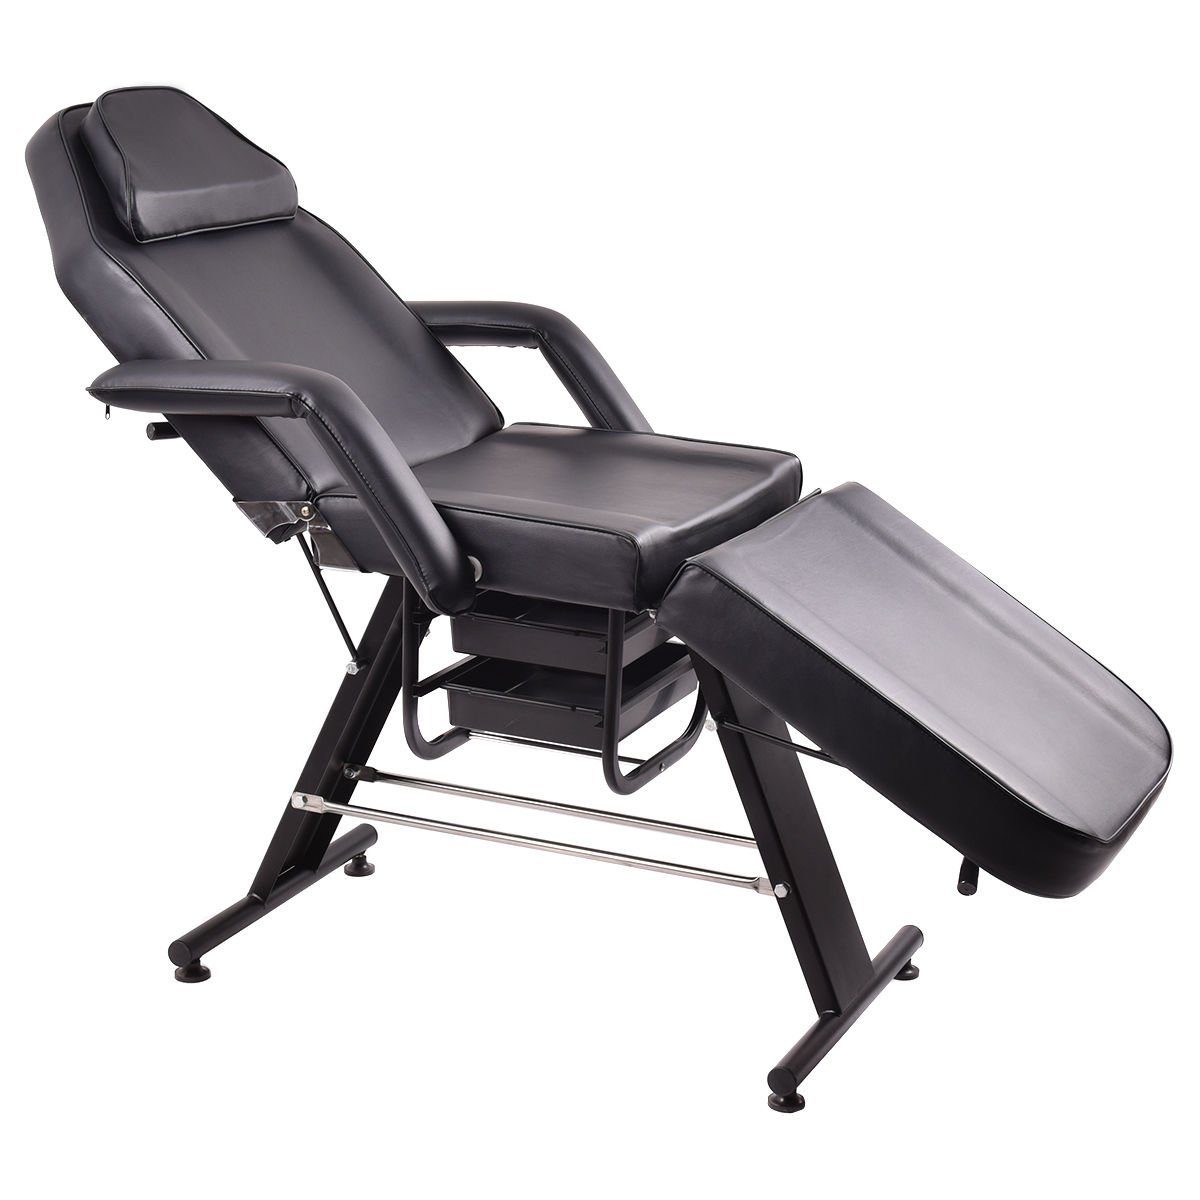 Shop Chairs Pro Shop Tattoo Chair Joker Tattoo Supply Professional